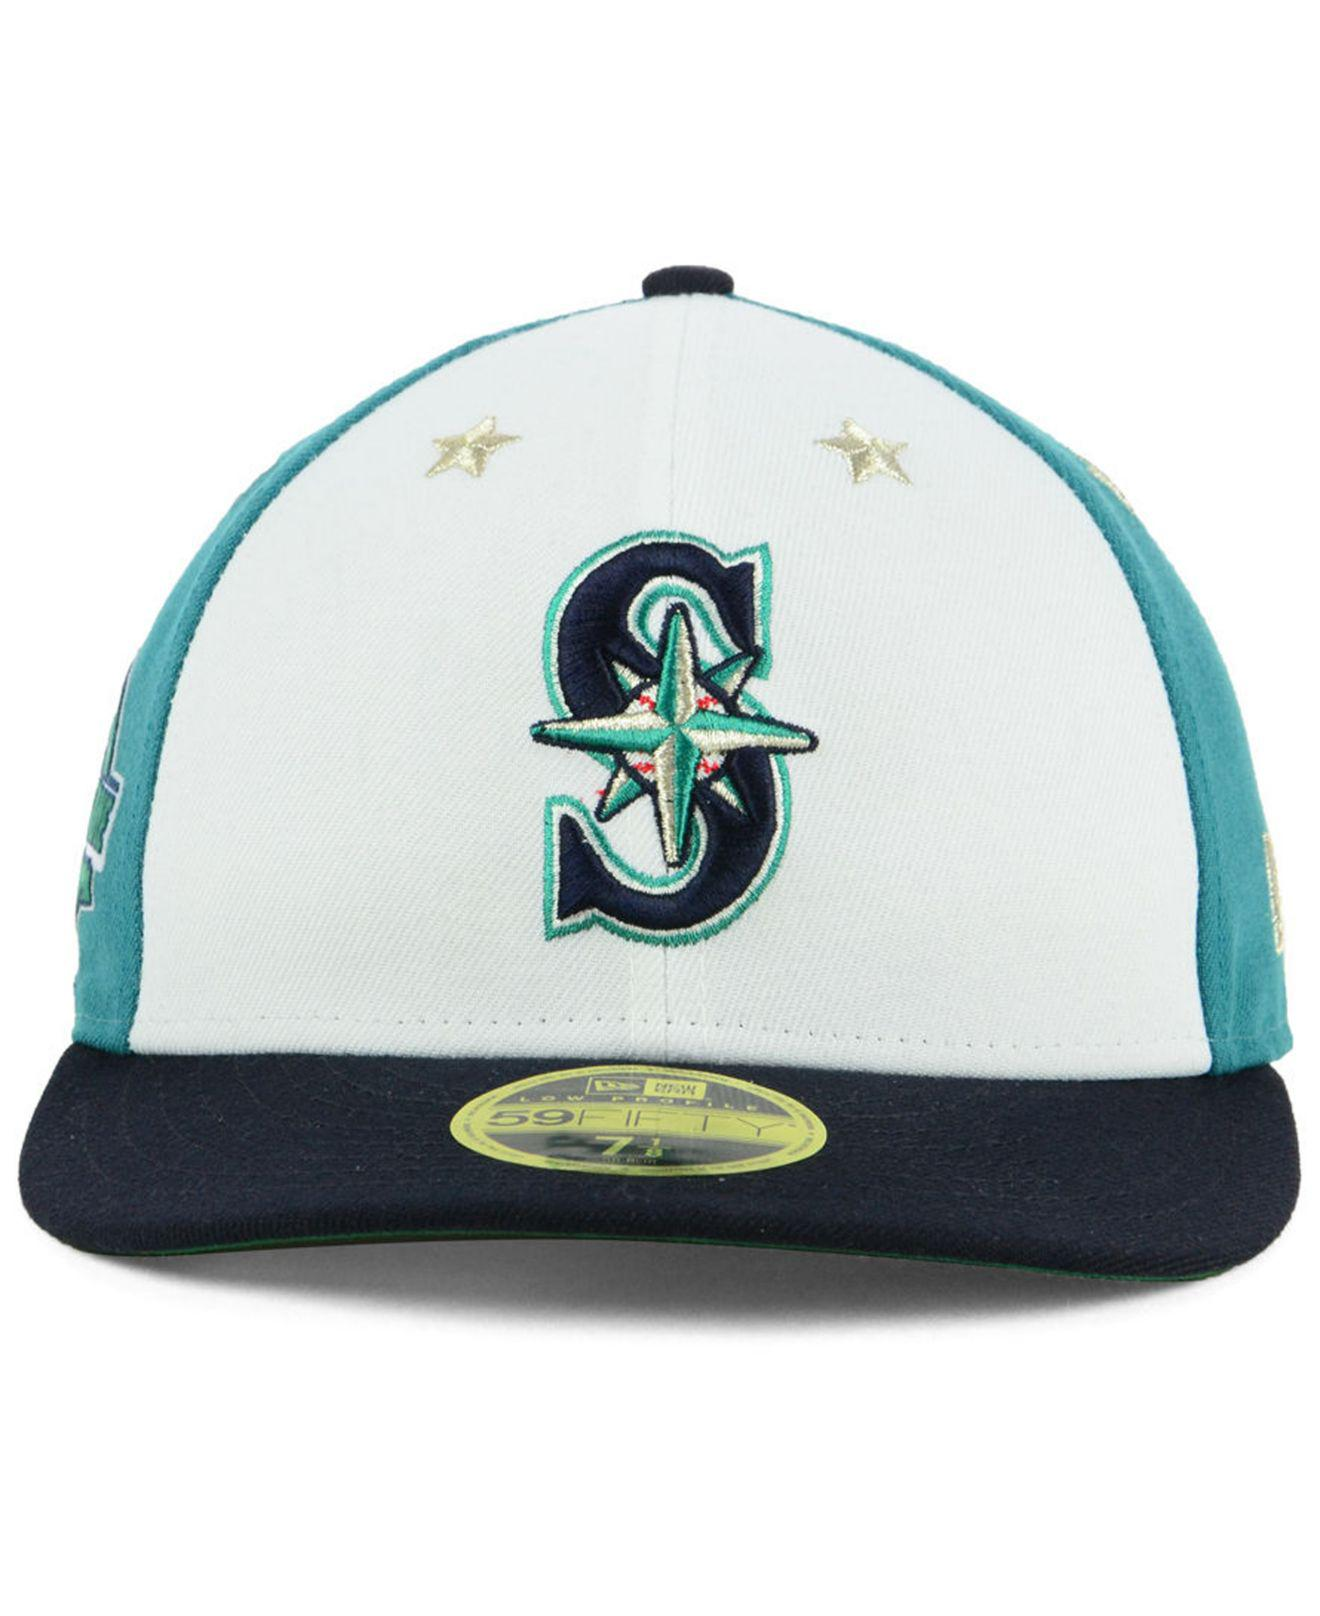 best service e6a40 135e8 aliexpress lyst ktz seattle mariners all star game patch low profile 59fifty  c4db9 47f8d